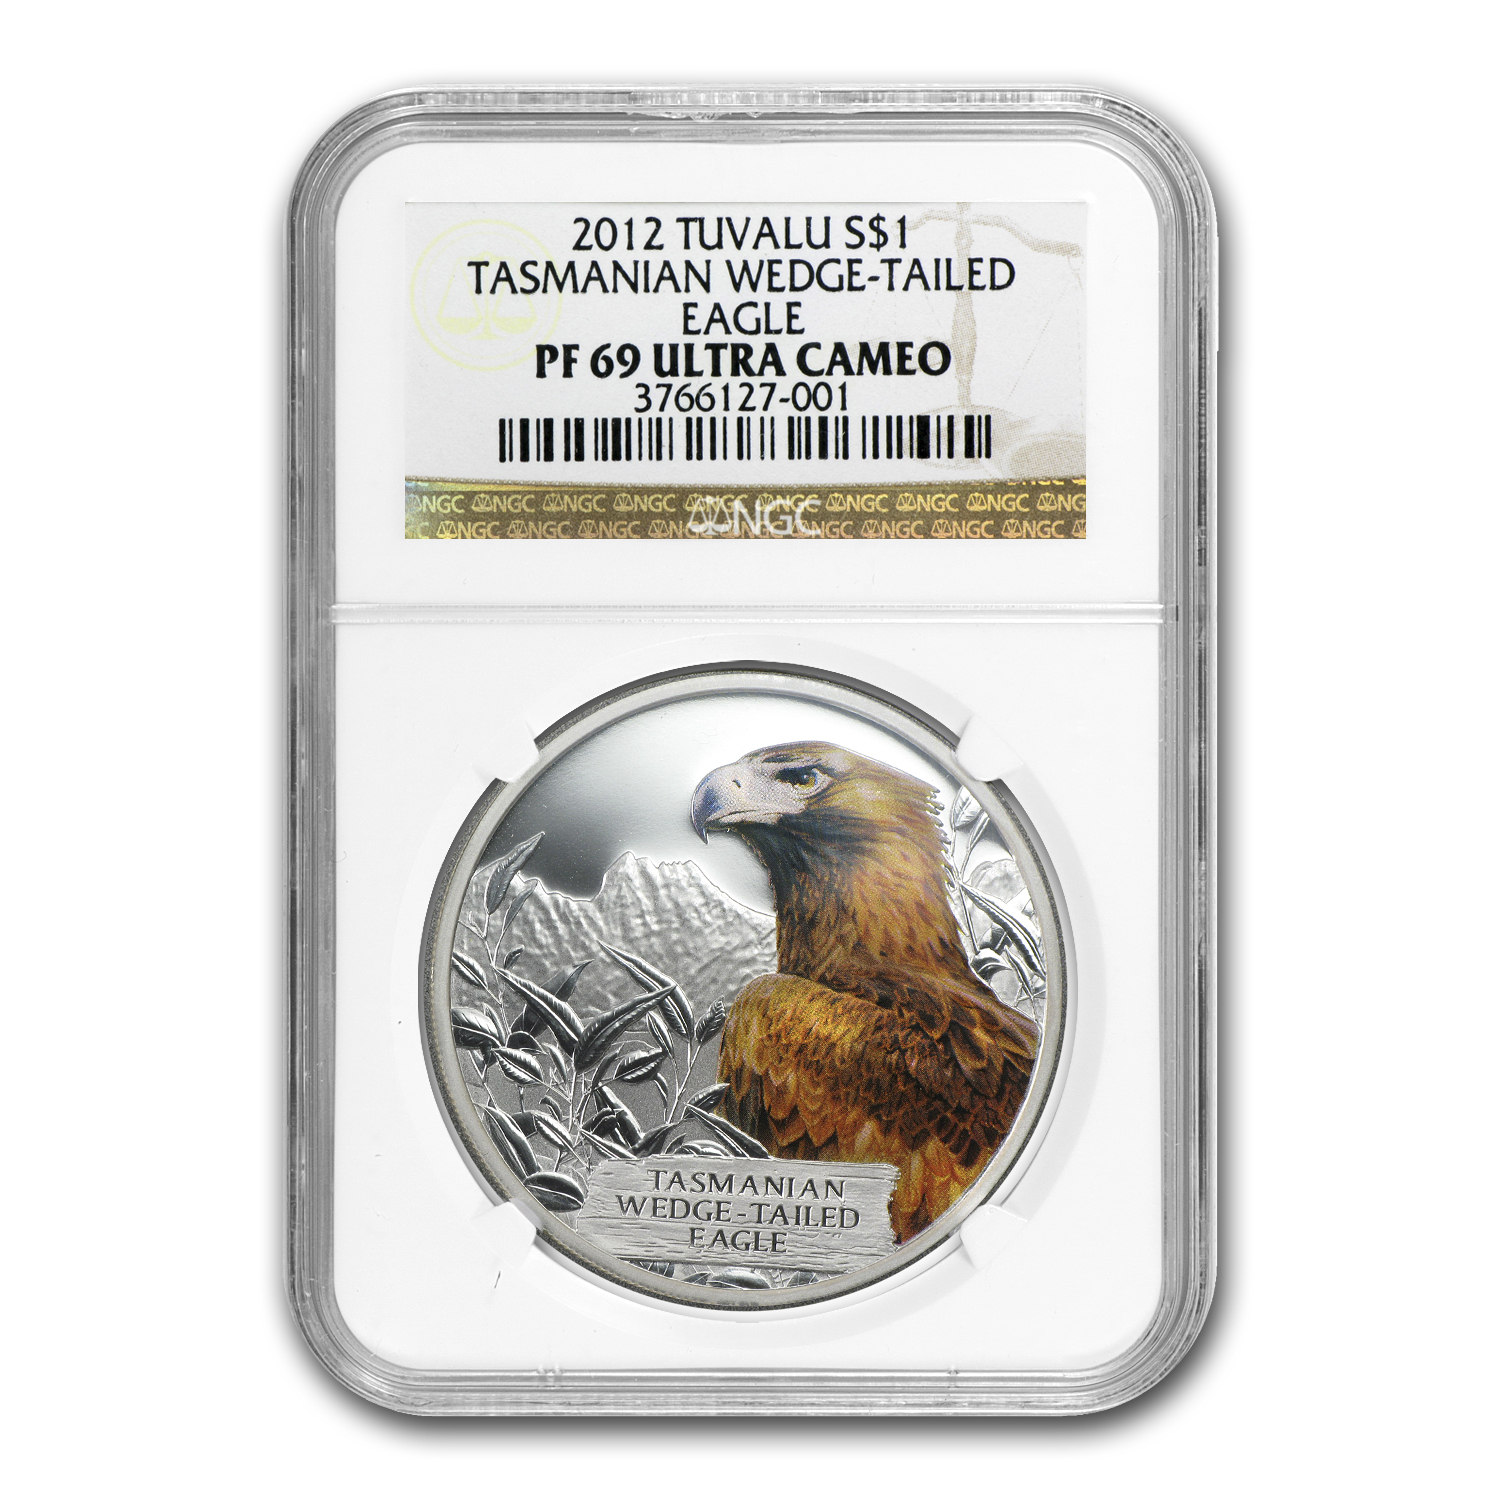 2012 Tuvalu 1 oz Silver Wedge-Tailed Eagle PF-69 NGC